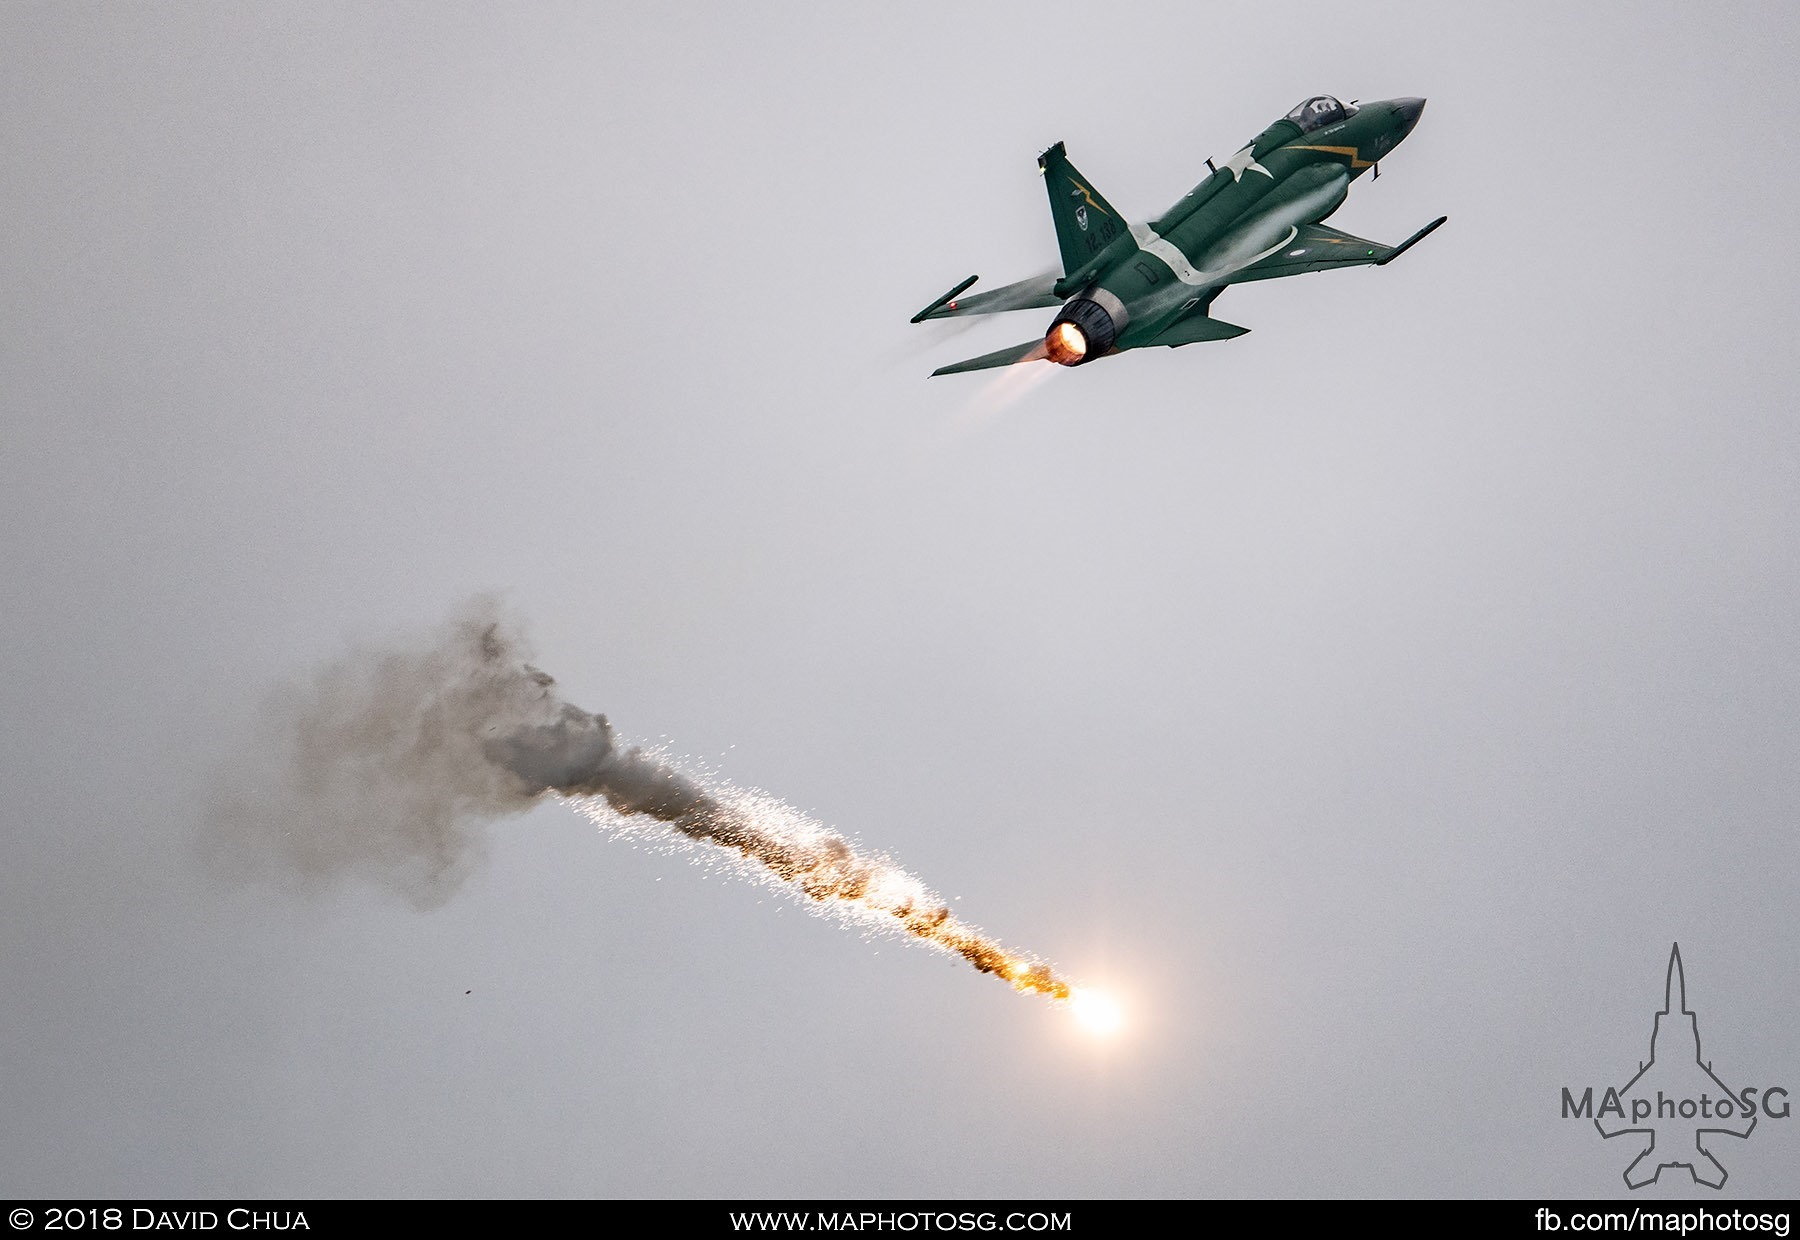 48. Pakistani Air Force JF-17 Thunder dispenses flares as part of its display